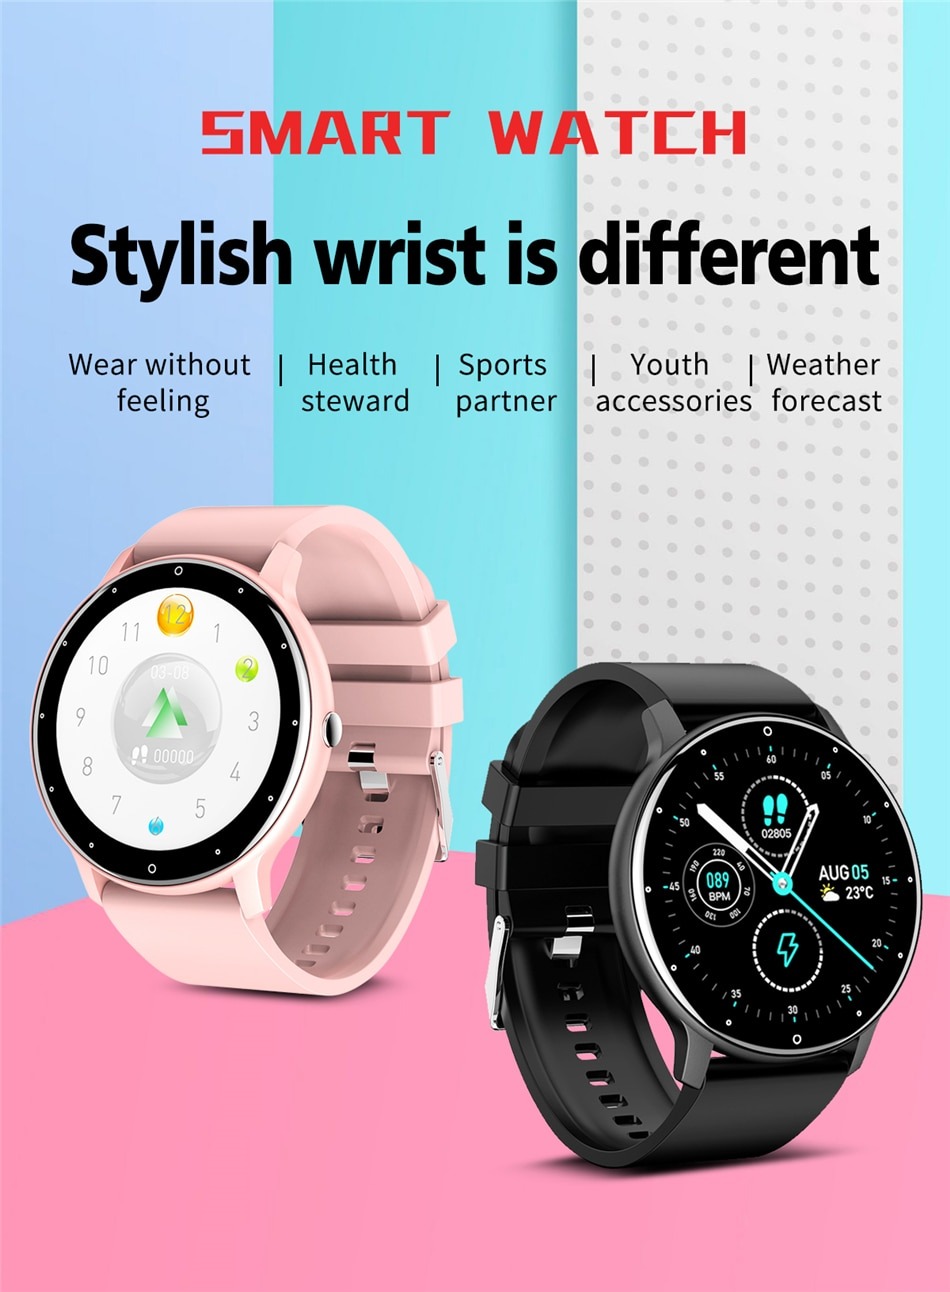 H669025855fee4503ba437b6b4b6b1df8y - LIGE 2021 New Smart Watch Men Full Touch Screen Sport Fitness Watch IP67 Waterproof Bluetooth For Android ios smartwatch Men box